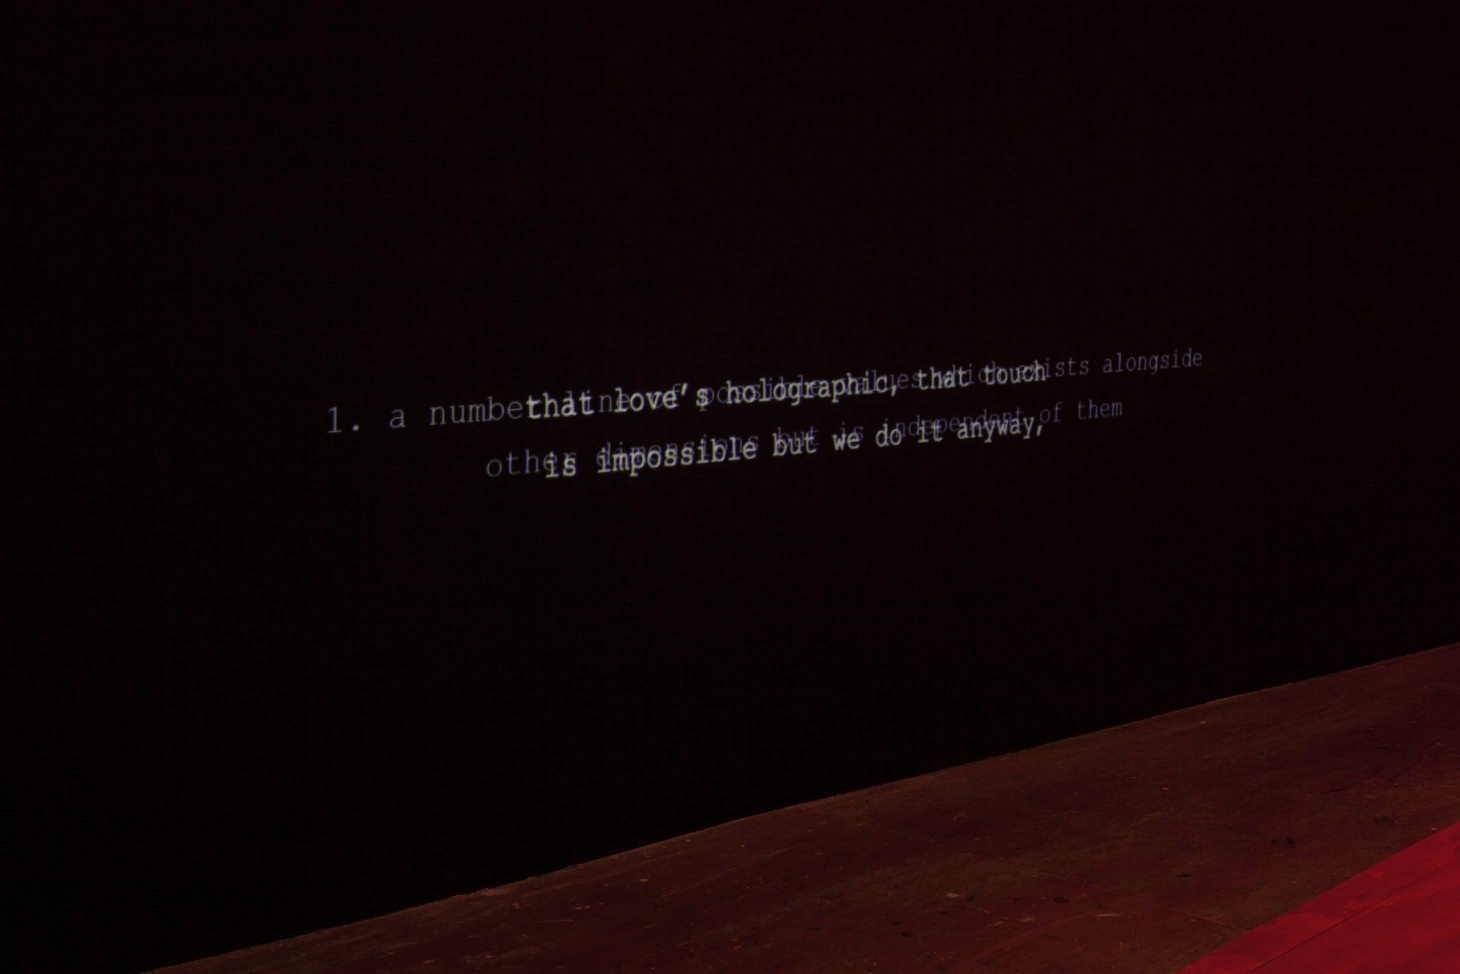 """A black wall softly lit with red light shows two lines of white captions, reading: """"that love's holographic, that touch is impossible but we do it anyway"""" which overlap a second projection of illegible text."""